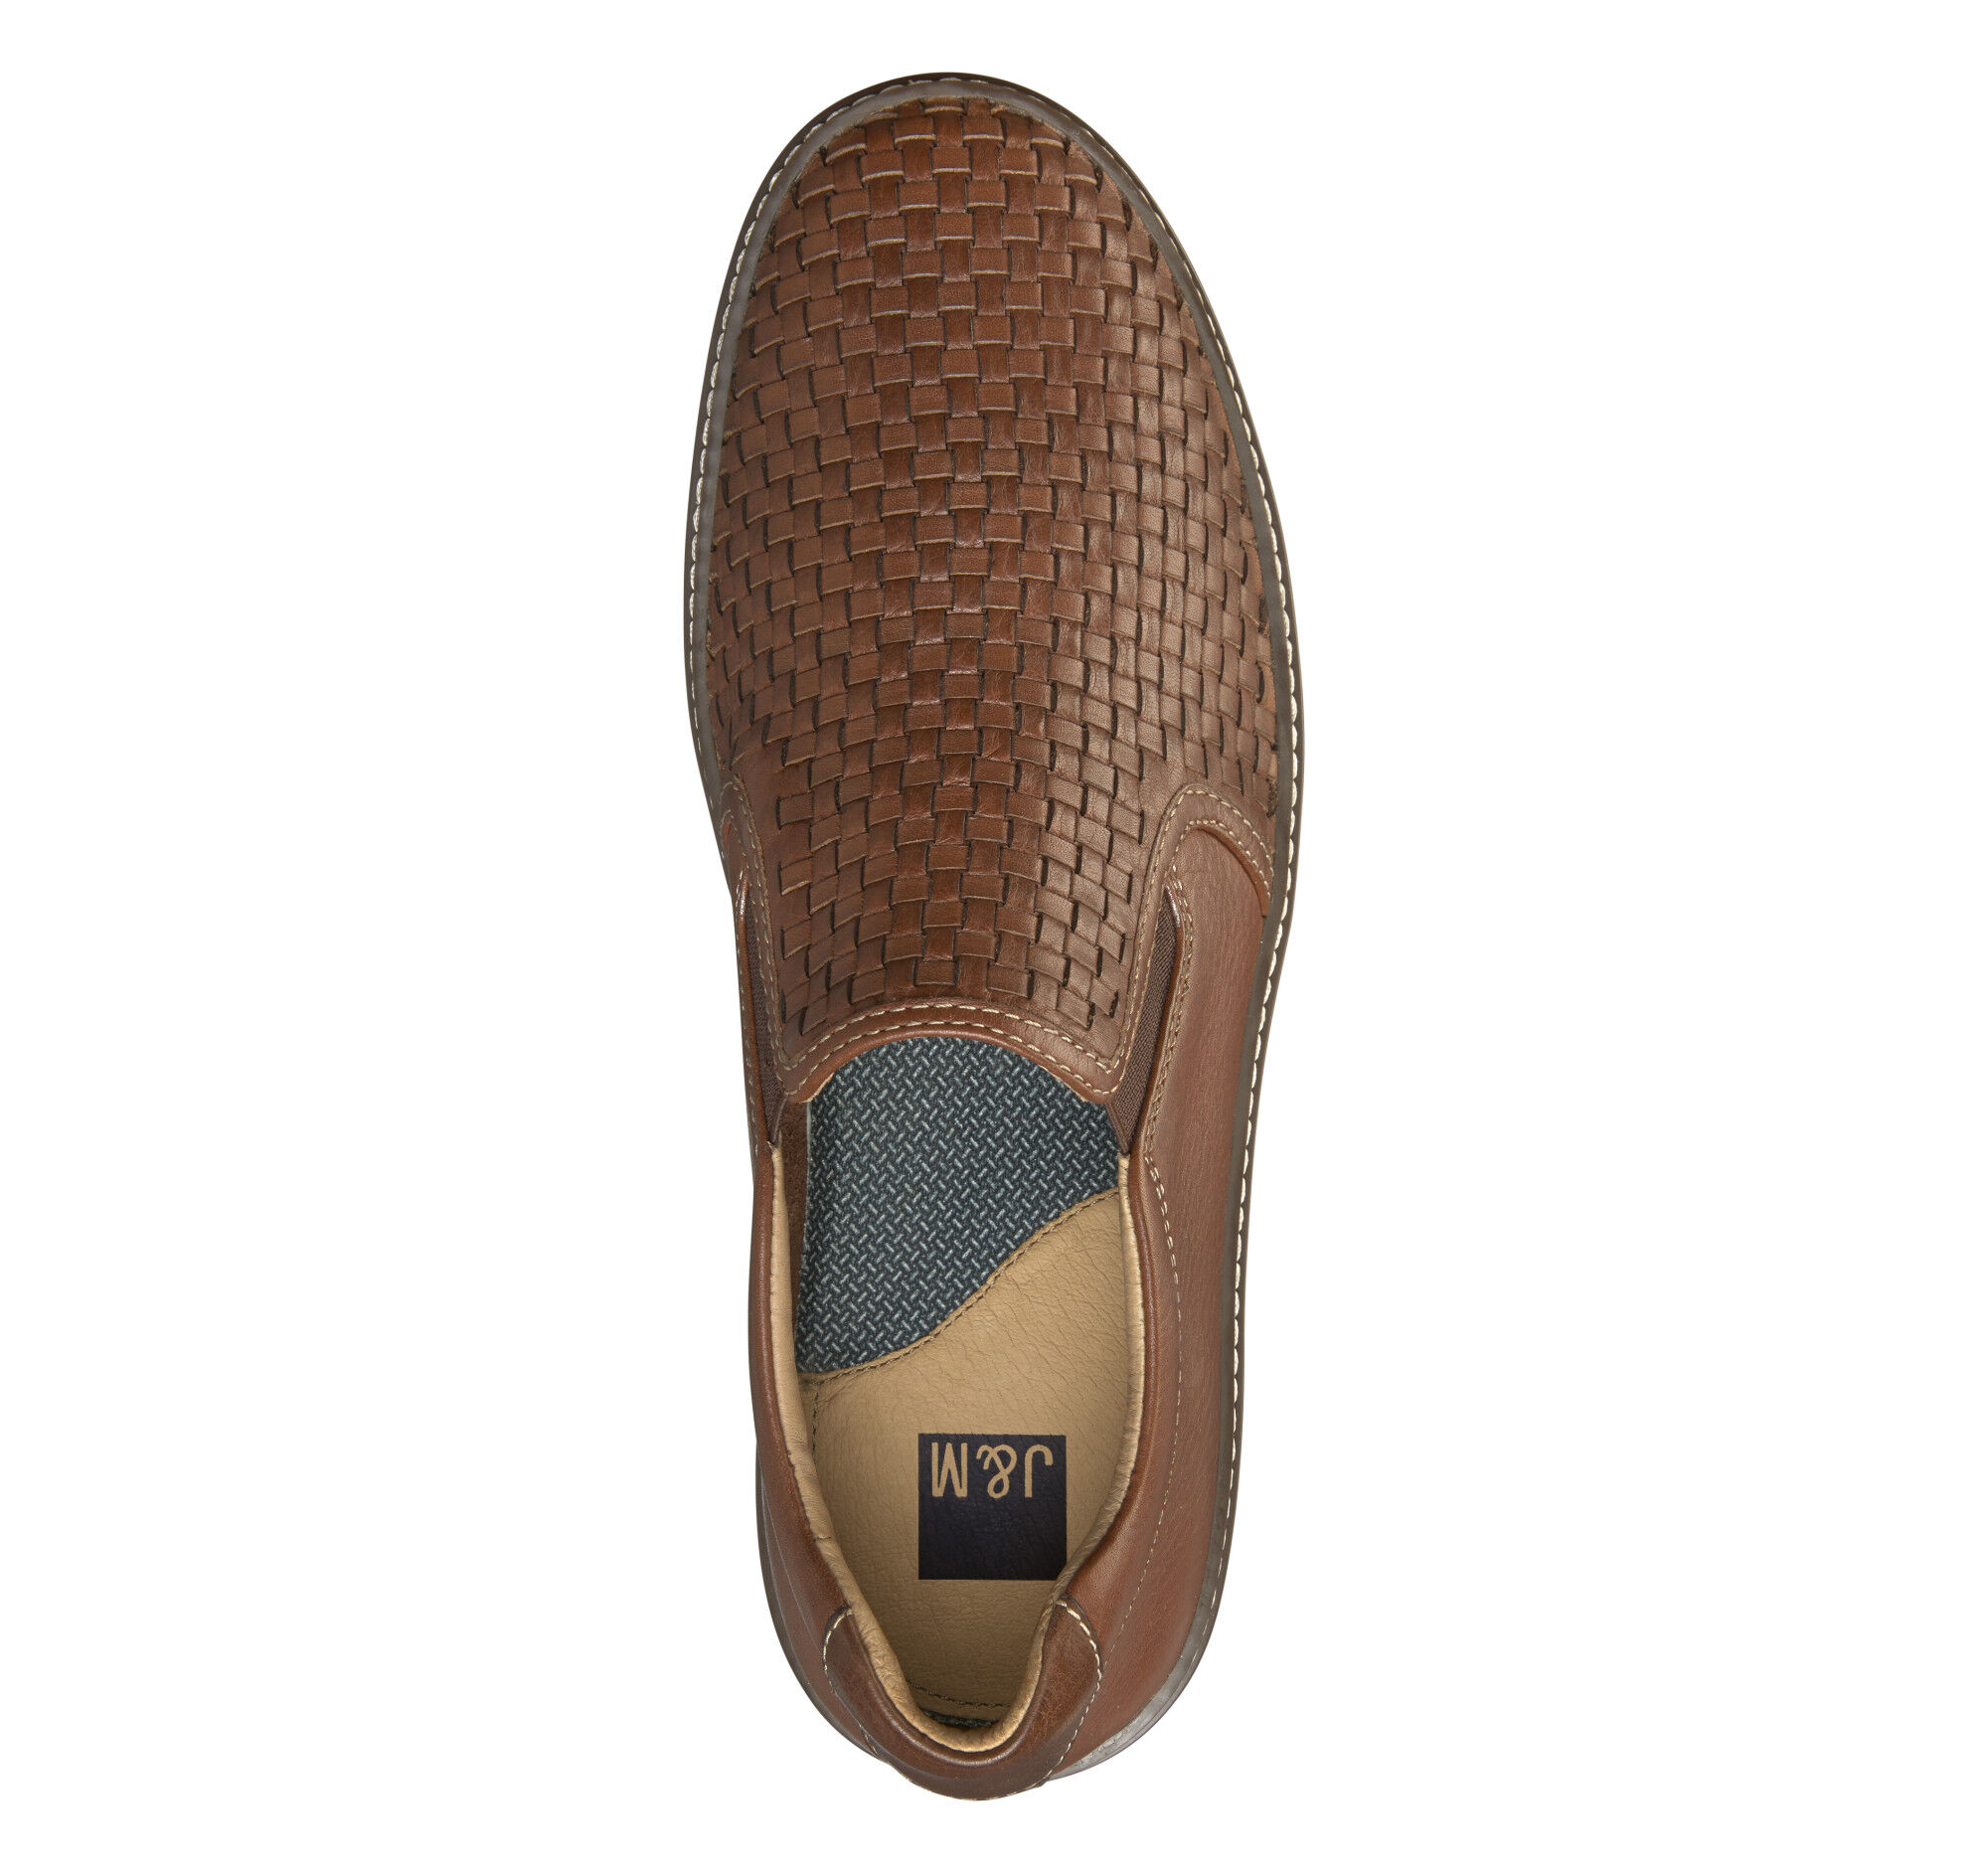 Mcguffey Woven Slip On Johnston Murphy D Island Shoes Casual England Suede Brown